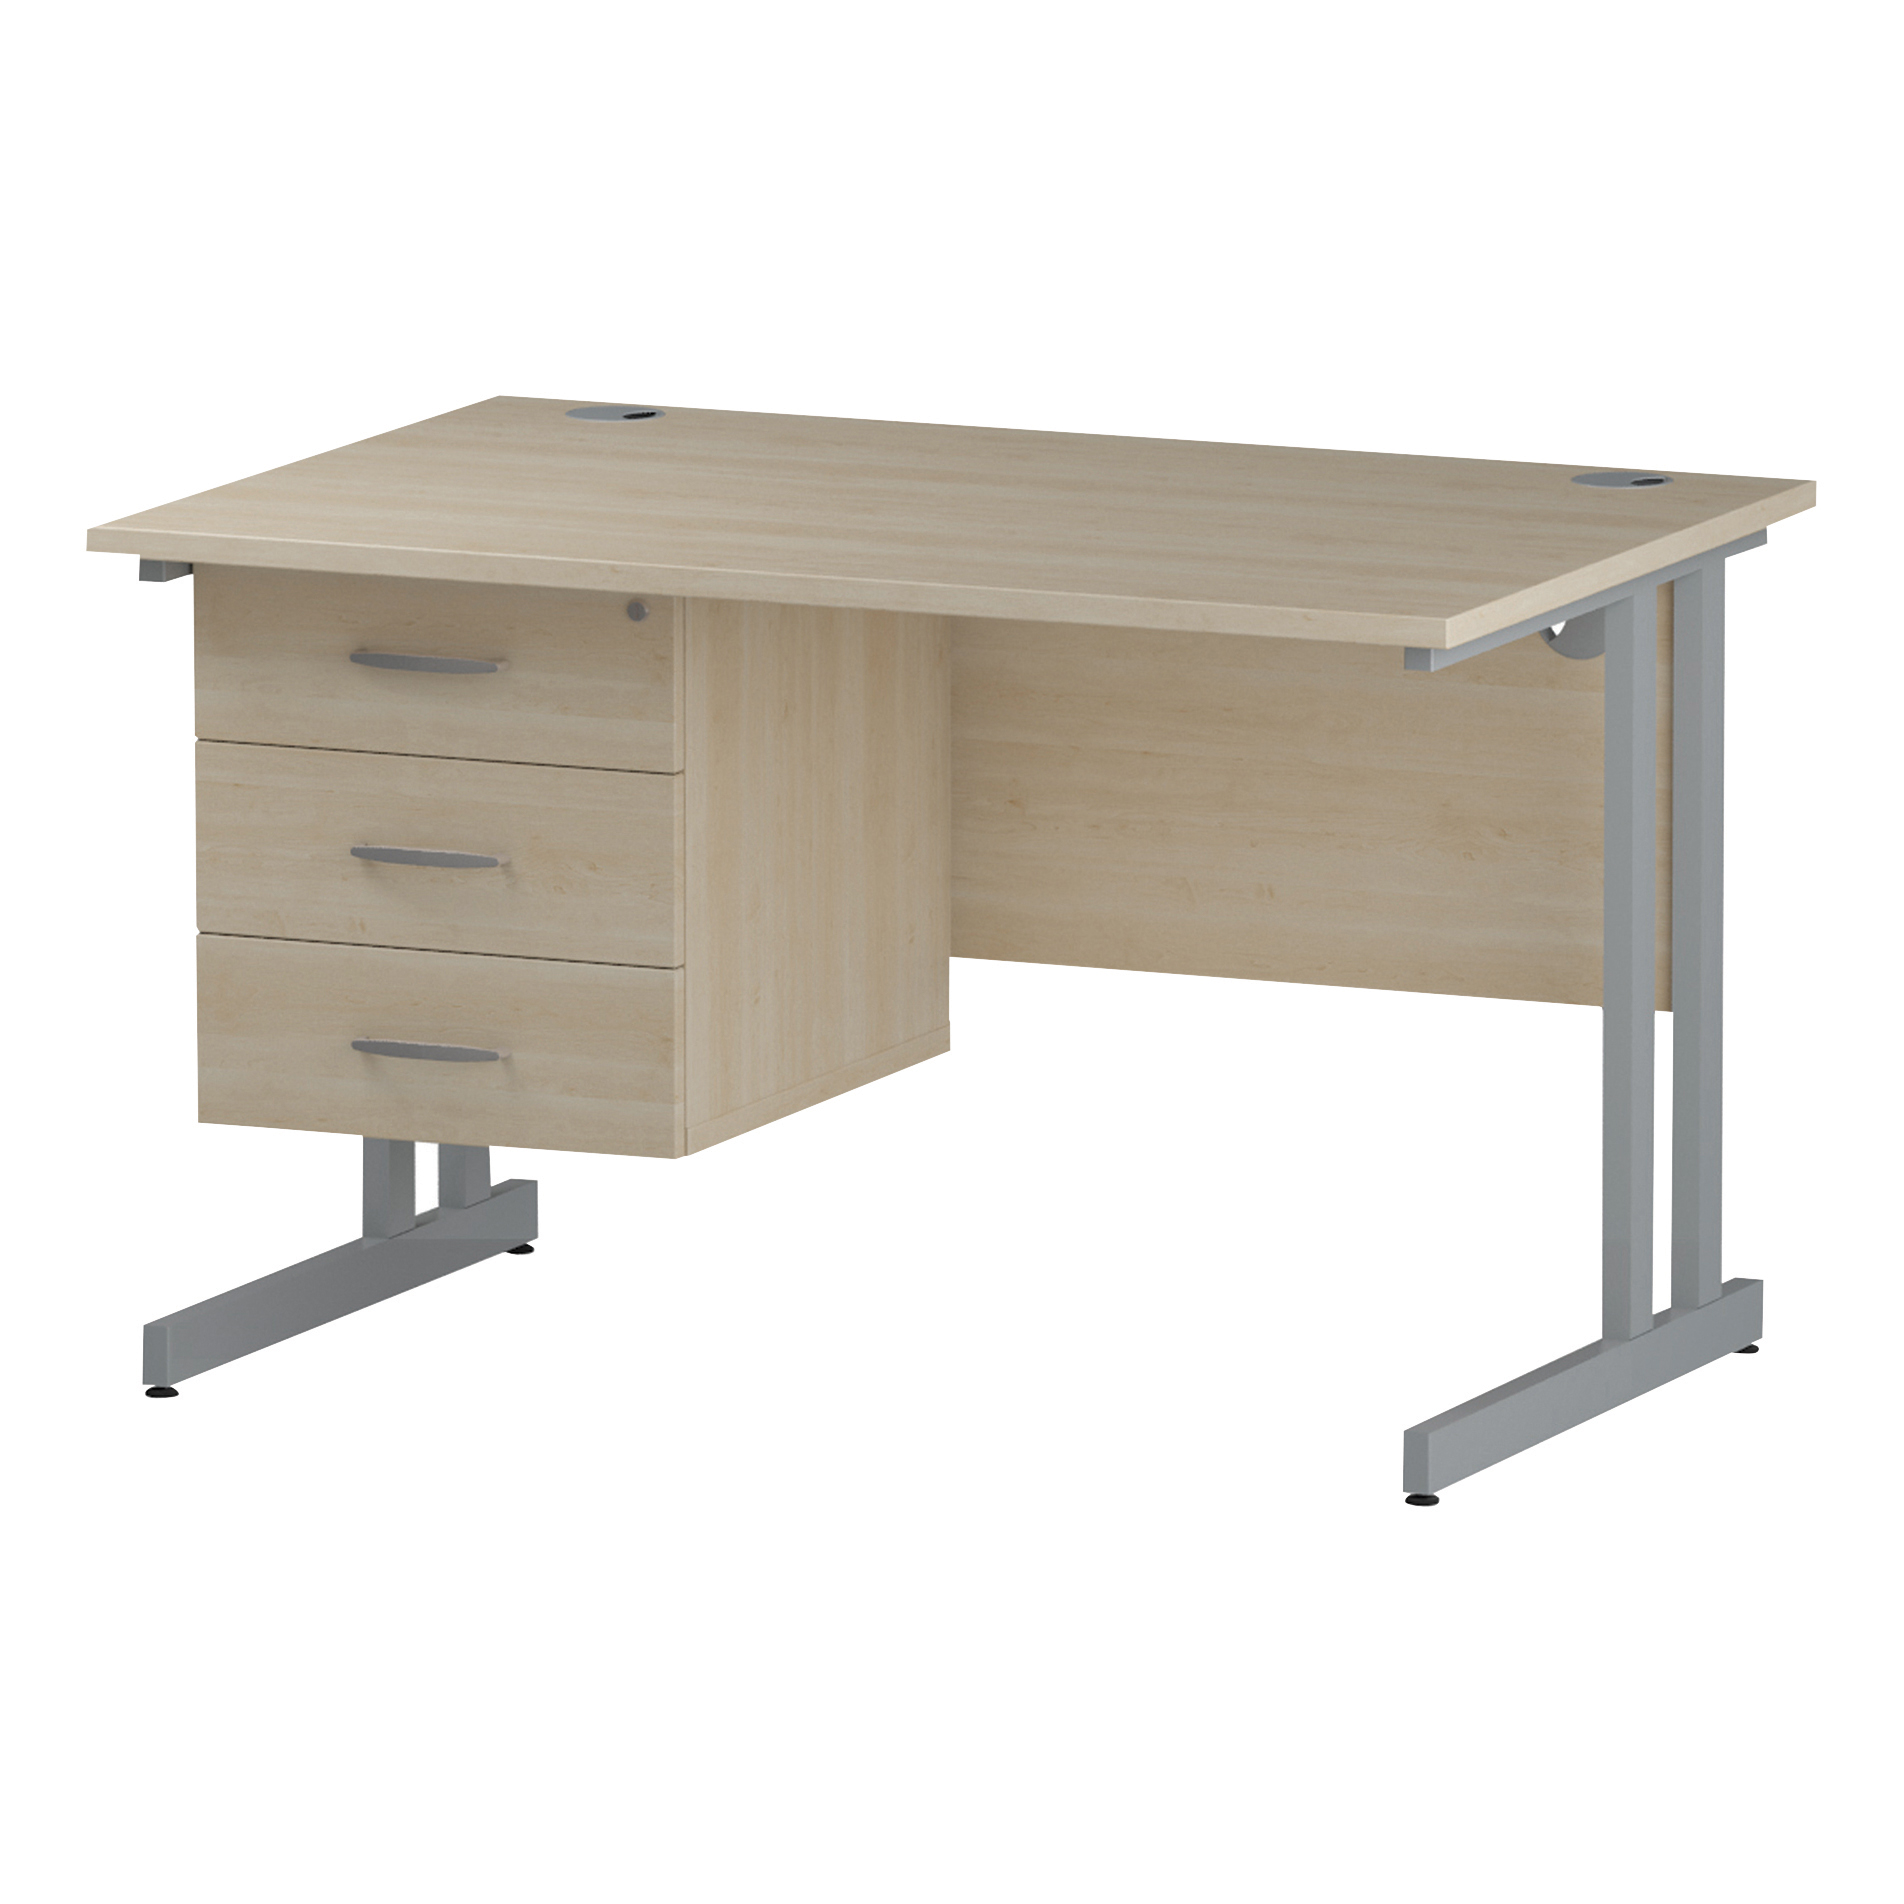 Trexus Rectangular Desk Silver Cantilever Leg 1200x800mm Fixed Pedestal 3 Drawers Maple Ref I002439